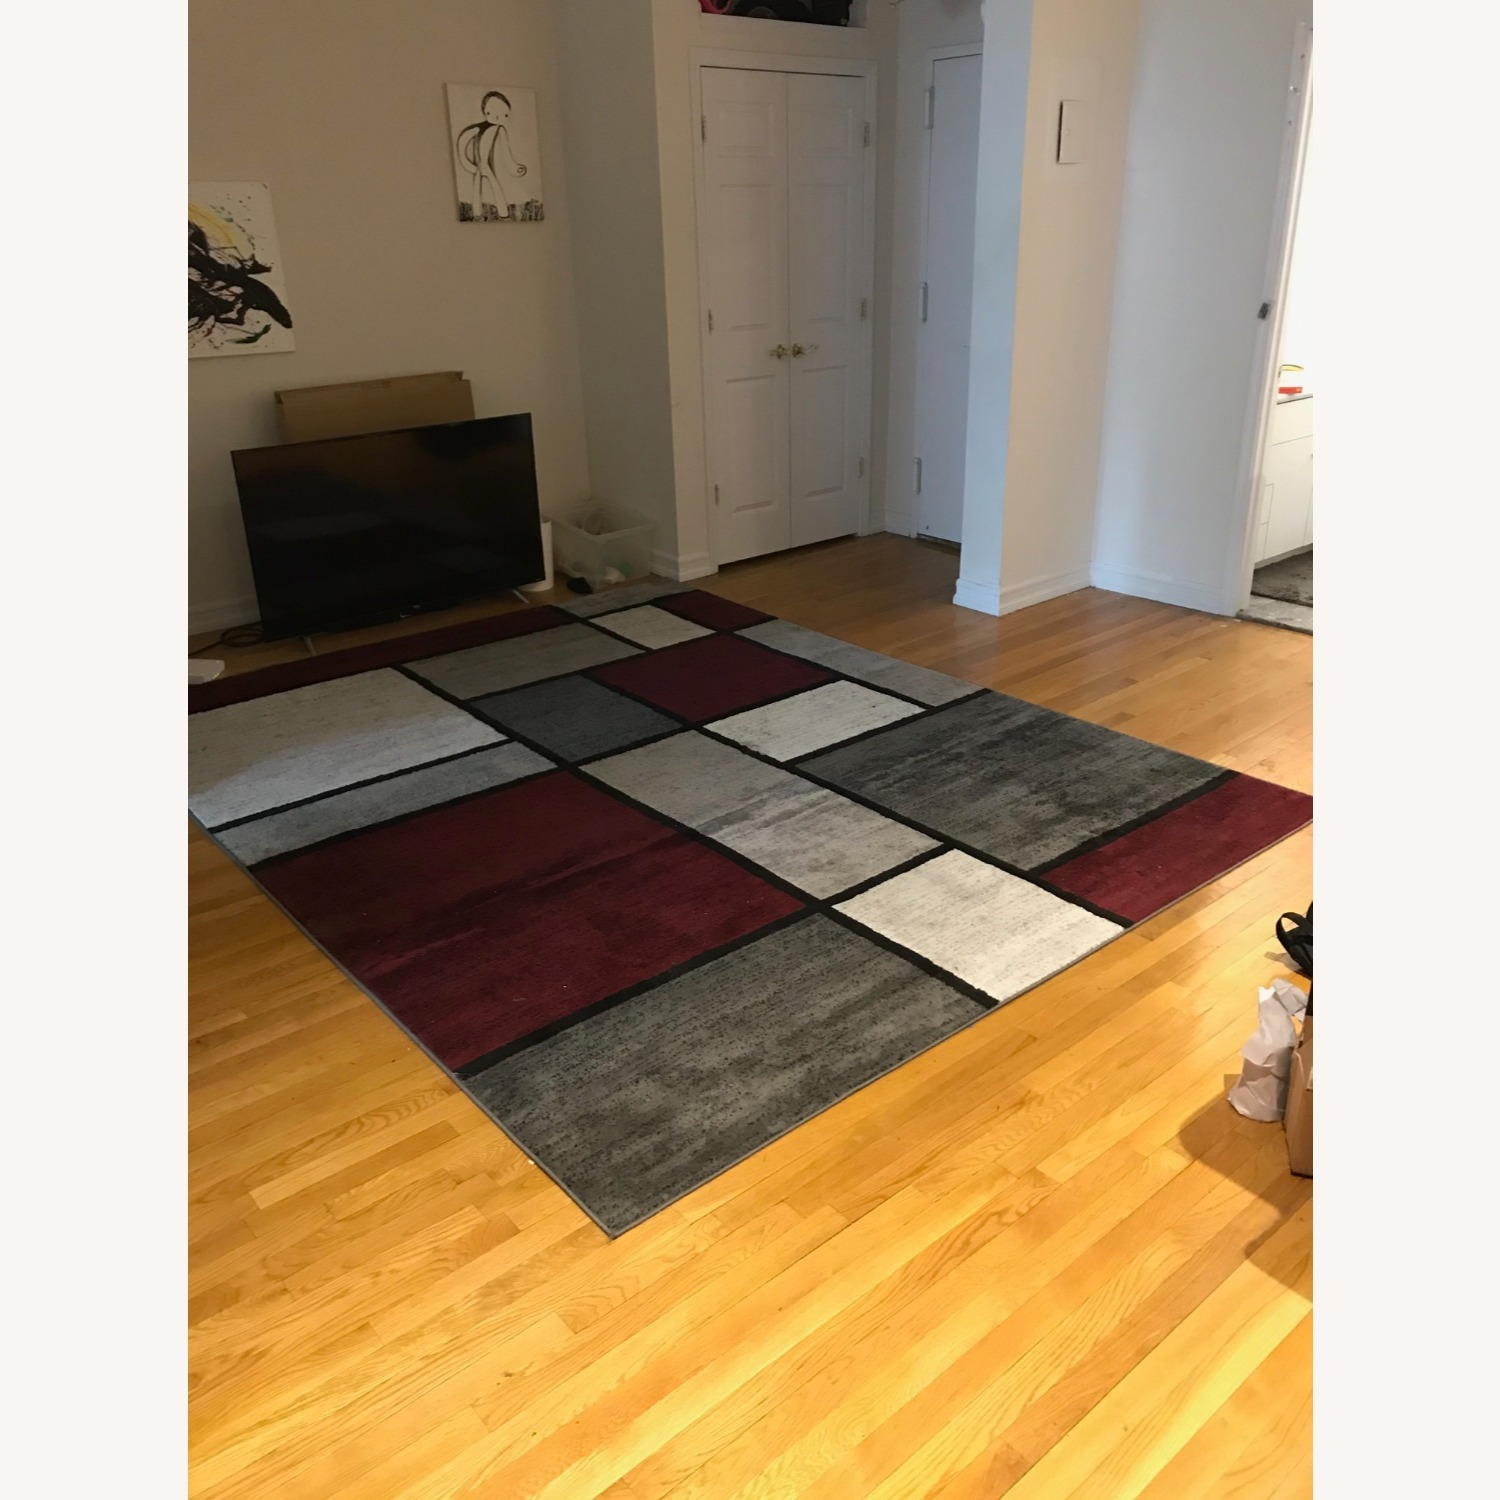 8' x 10' Red White and Grey Area Rug w Rug Pad - image-3